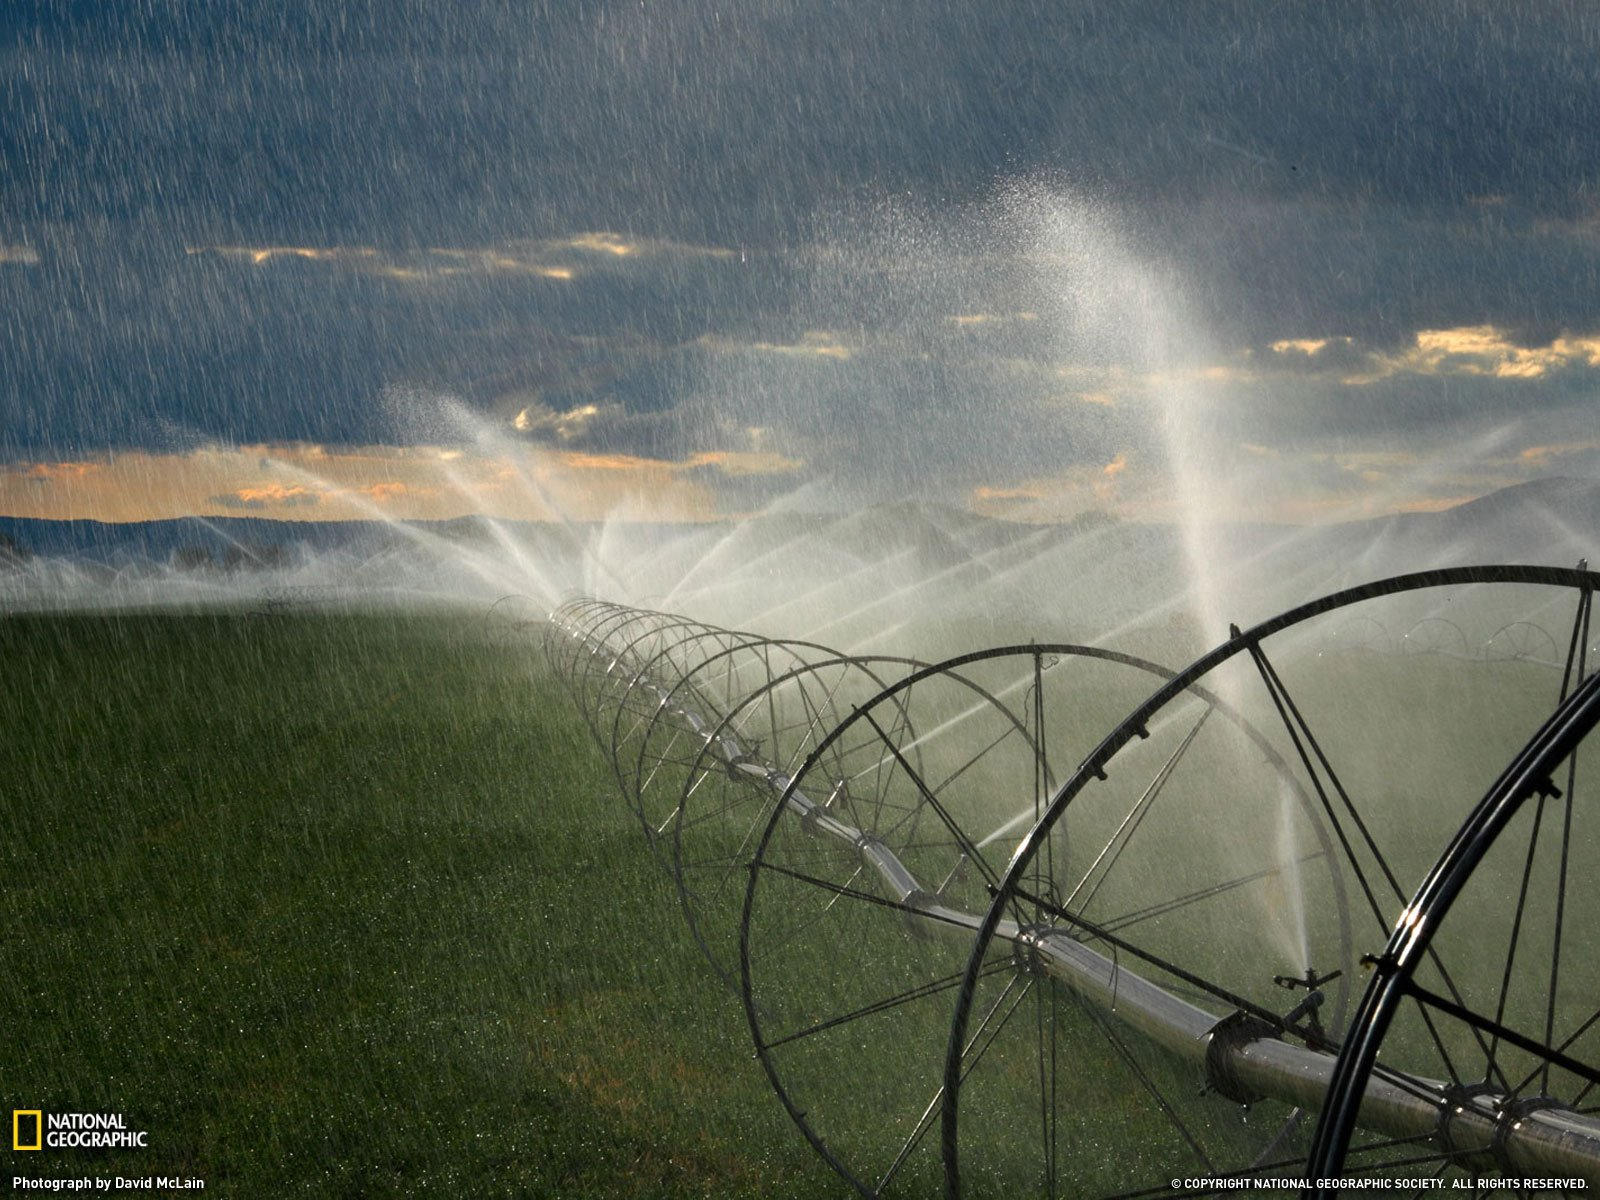 Irrigation on the fields wallpapers and images   wallpapers 1600x1200